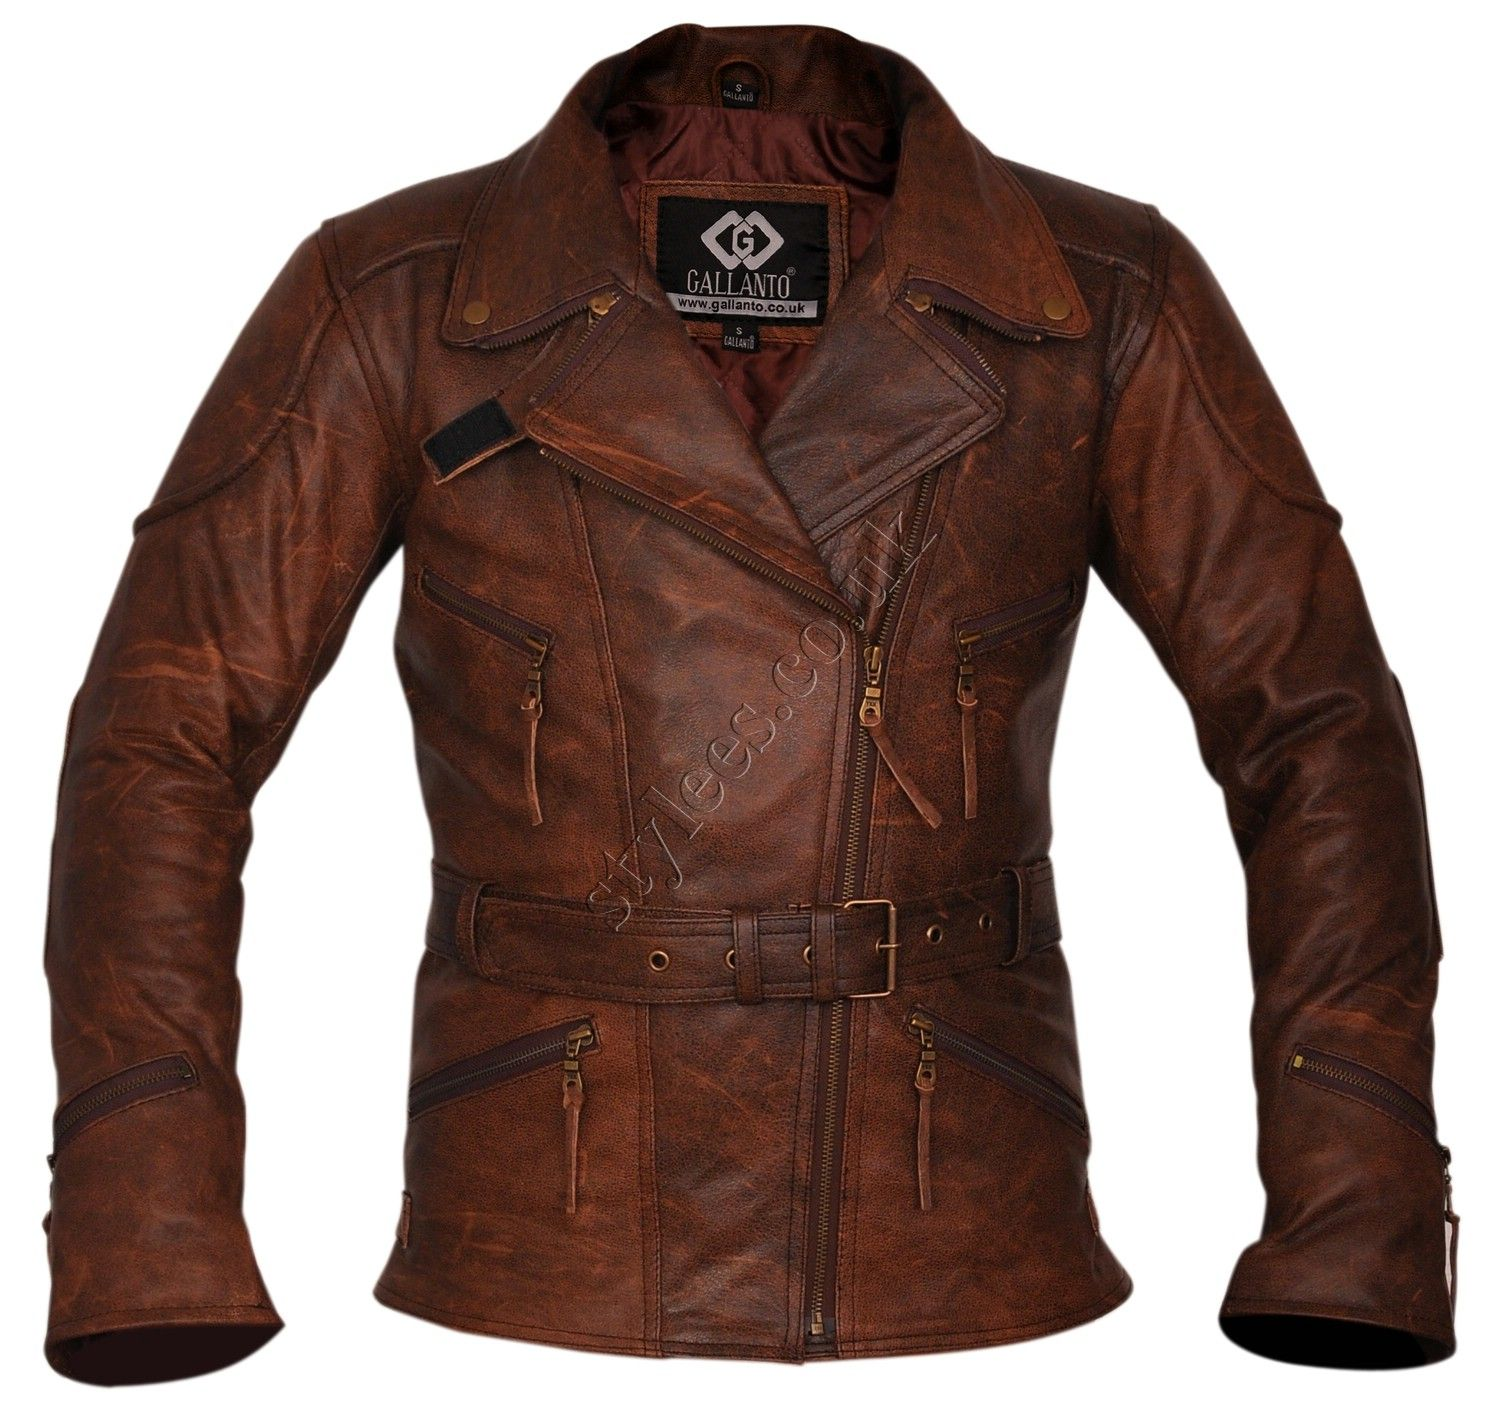 3 4 Ed Vintage Brown Uni Biker Leather Jacket Stylees Co Uk Motorcycle Fashion Clothing Jackets Helmets Boots